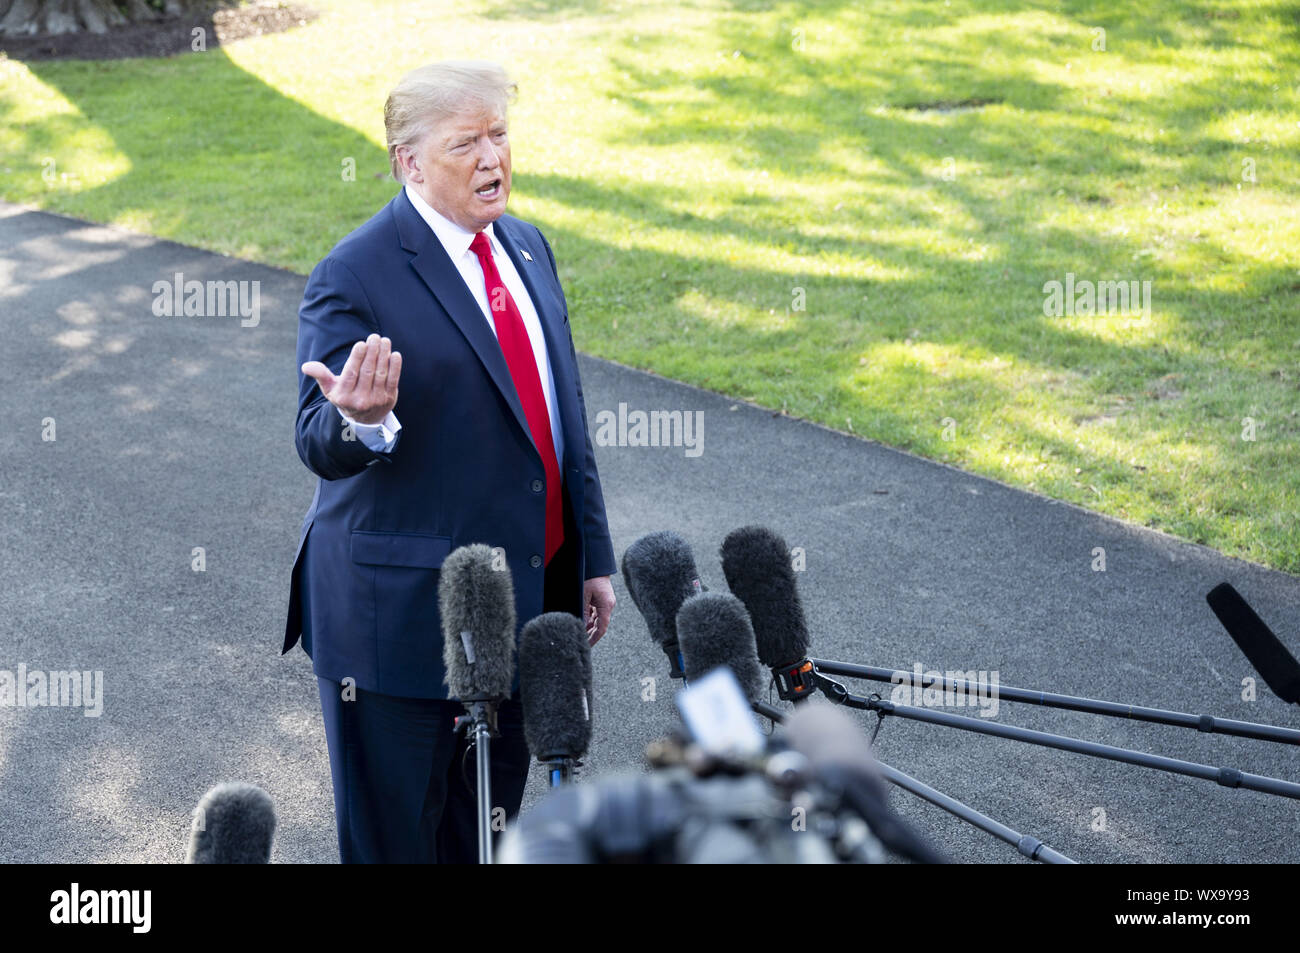 Washington, DC, USA. 16th Sep, 2019. September 16, 2019 - Washington, DC, United States: President DONALD TRUMP talking with reporters near the South Lawn of the White House as he leaves on the Marine One helicopter to start his journey to attend a ''Keep America Great Rally'' in Albuquerque, New Mexico. Credit: Michael Brochstein/ZUMA Wire/Alamy Live News Stock Photo